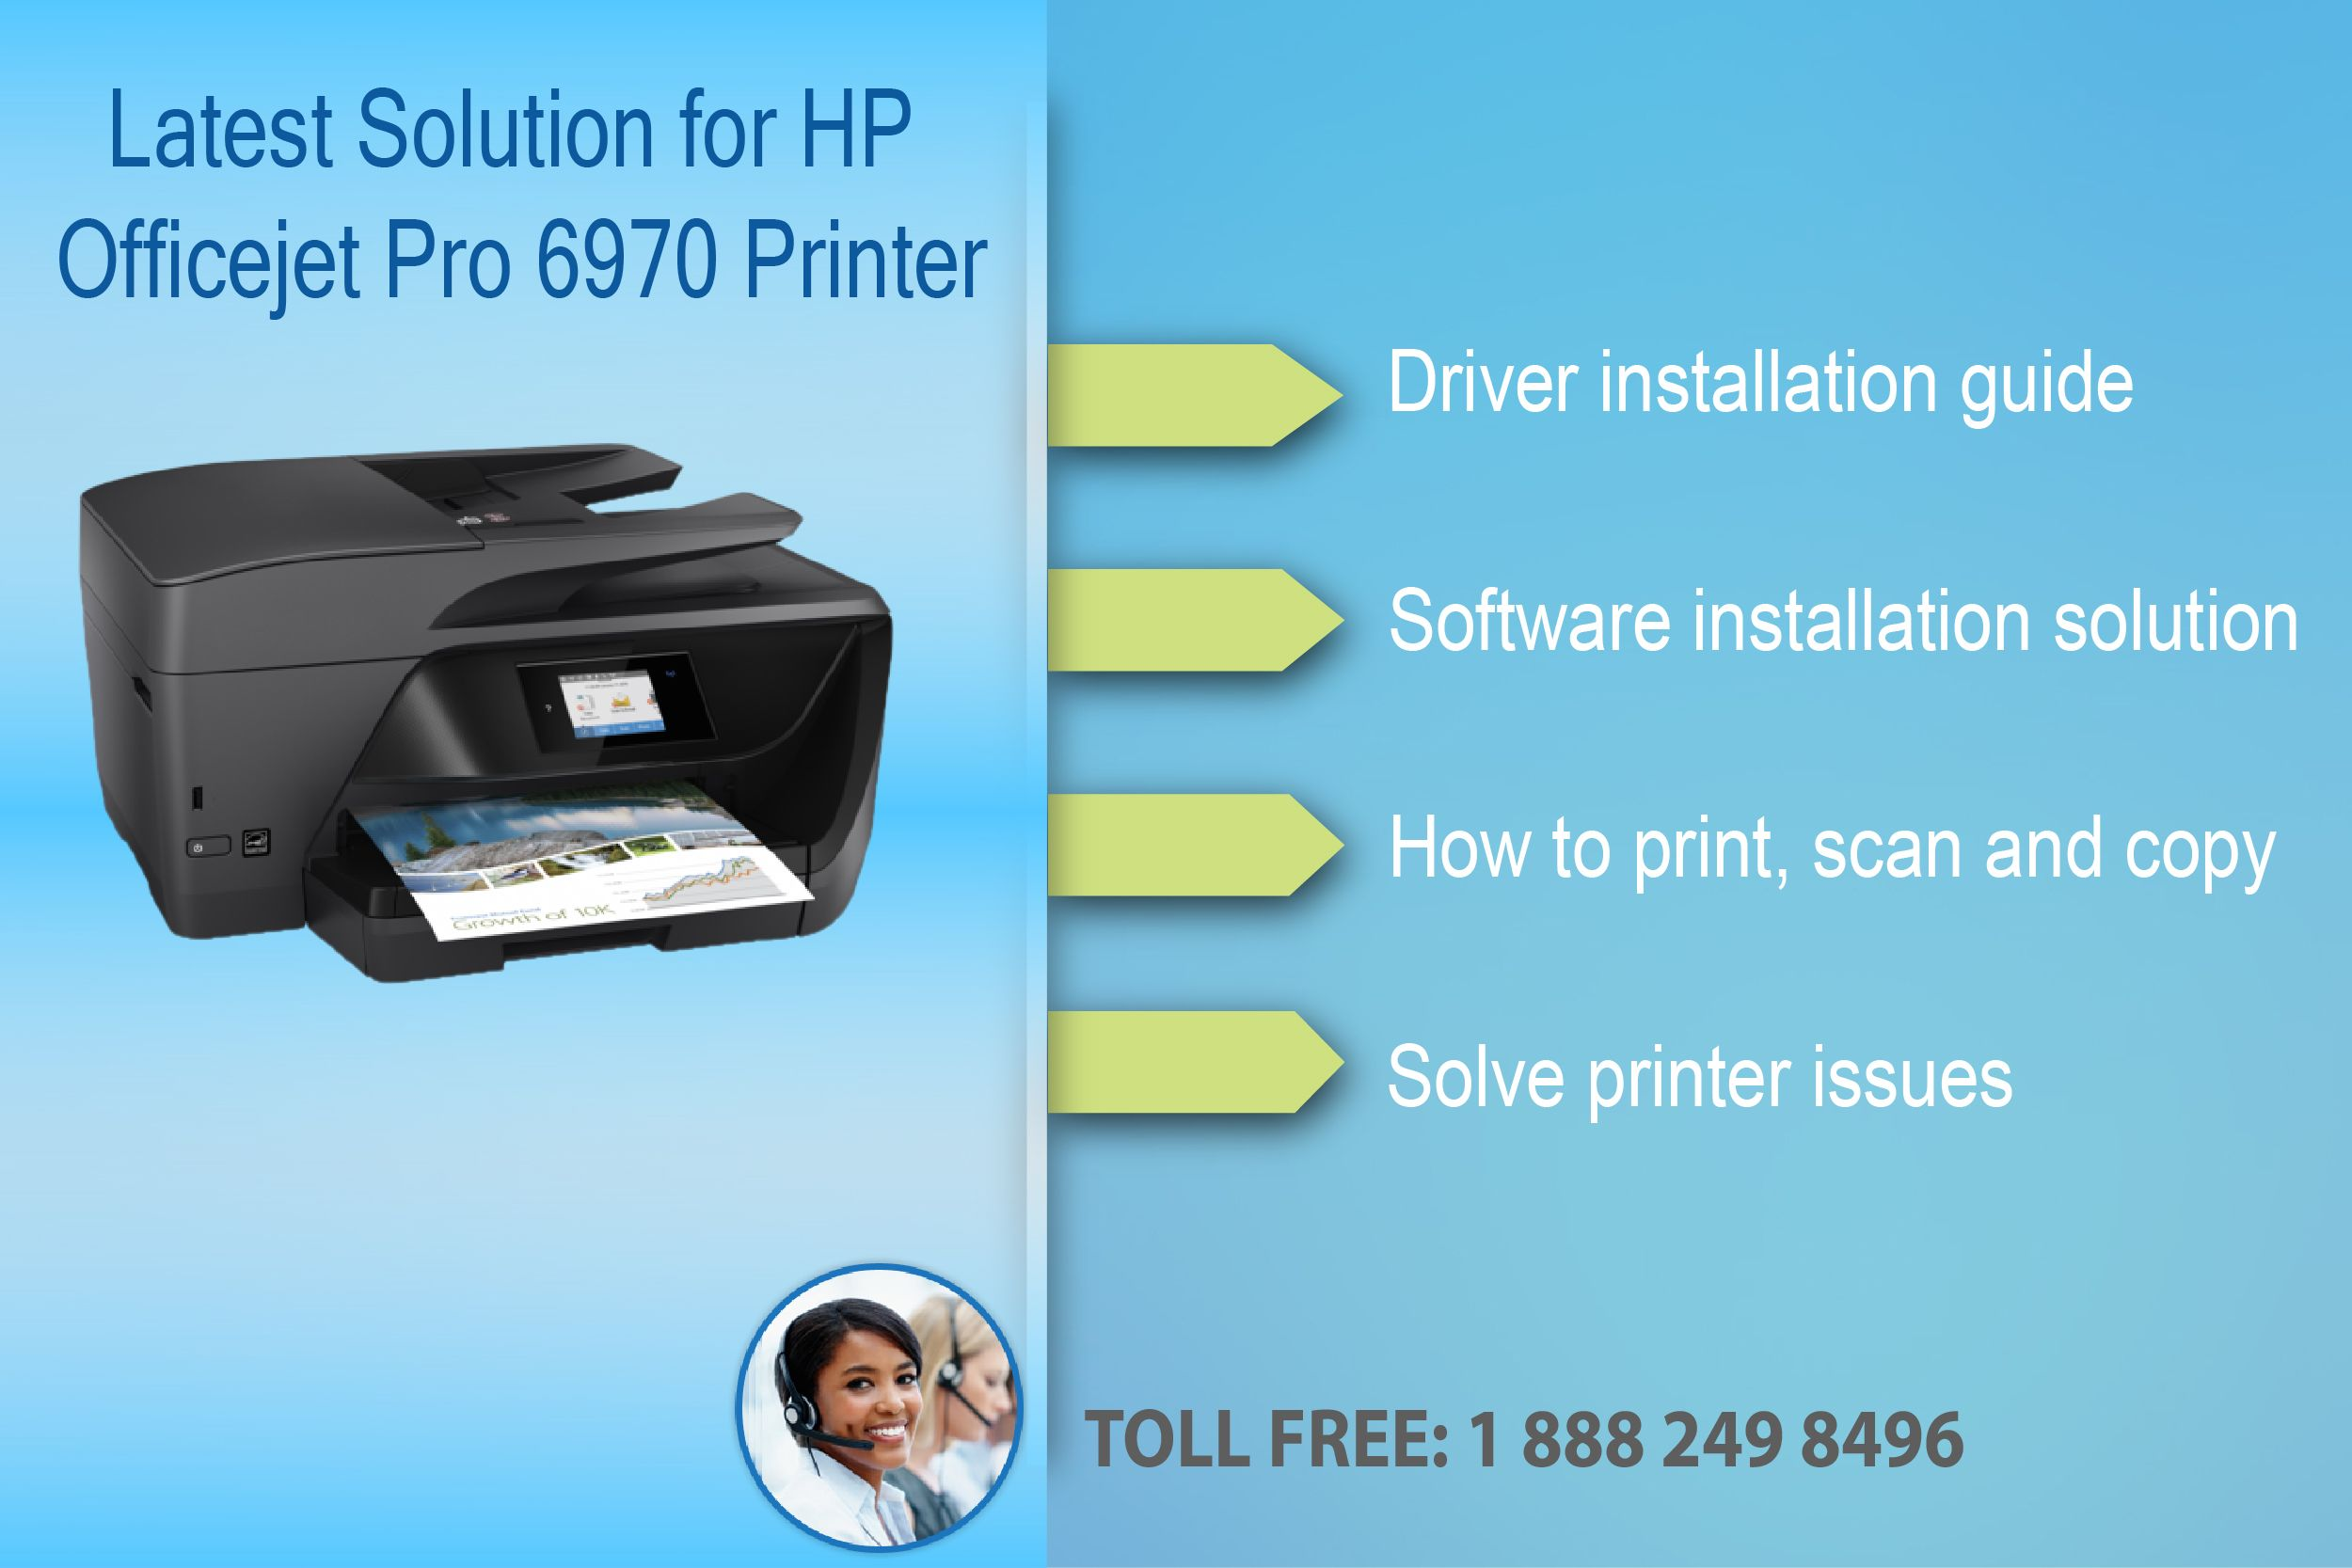 Best support and solution for HP Printer to setup and troubleshoot